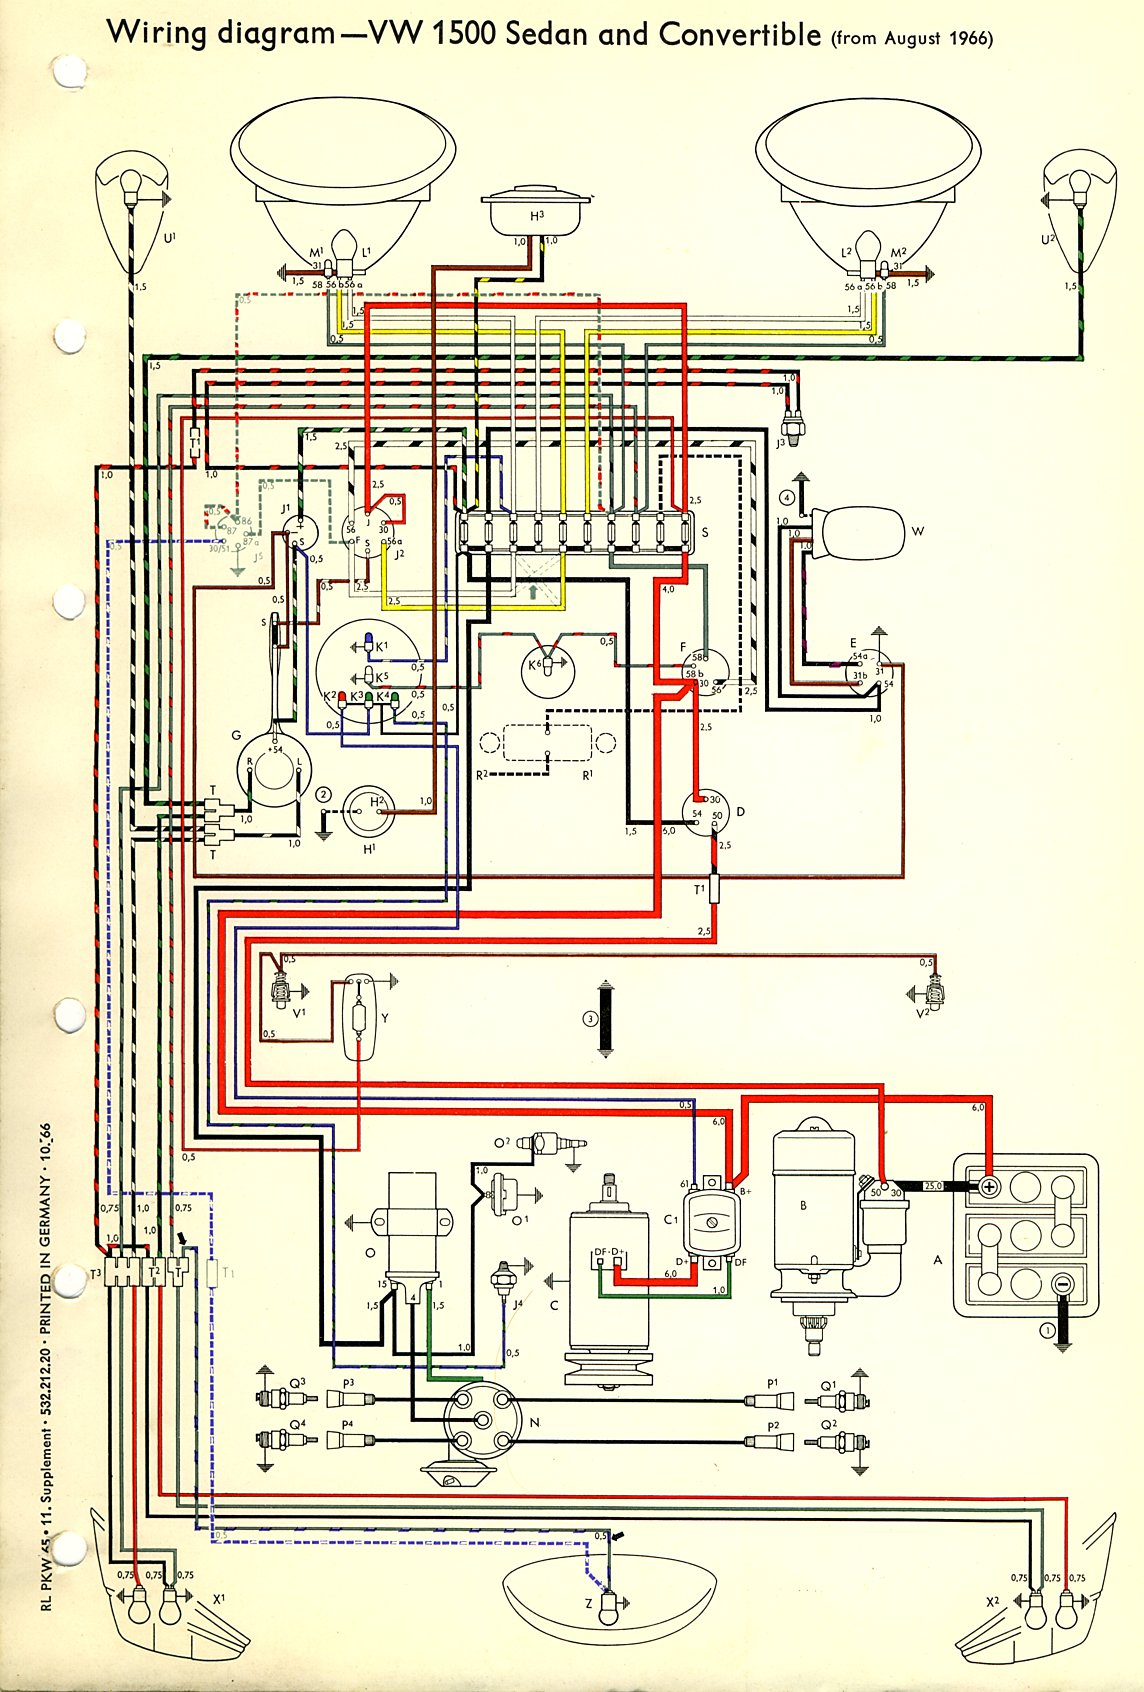 1973 Vw Beetle Wiring Diagram | Online Wiring Diagram Vw Beetle Fuse Box Wiring on vw touareg fuse box, mazda rx8 fuse box, super beetle fuse box, vw beetle fuse block, 2000 beetle fuse box, vw eos fuse box, 73 beetle fuse box, 98 jetta fuse box, toyota supra fuse box, porsche 944 fuse box, honda s2000 fuse box, vw fuse box diagram, vw thing fuse box, ford contour fuse box, toyota rav4 fuse box, 2004 beetle fuse box, peugeot 106 fuse box, vw beetle headlight fuse, 1968 vw bug fuse box, 2008 yaris fuse box,